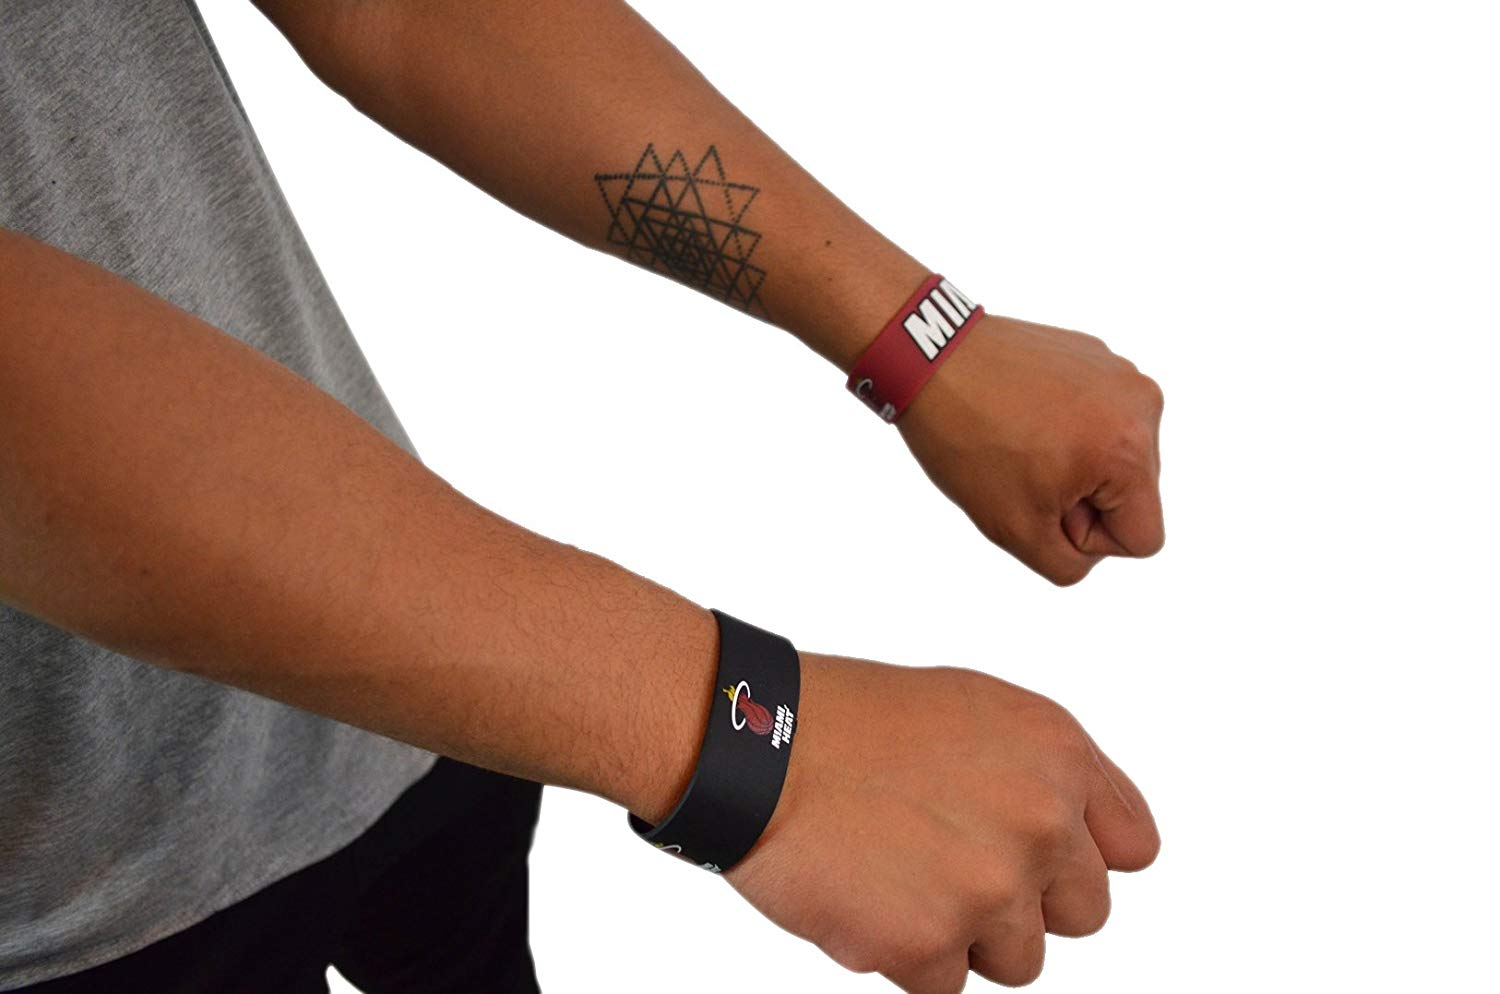 timeless design 2086f 56829 Official National Basketball Association Fan Shop Authentic NBA 4-pack  Silicone Rubber Wristbands (Miami Heat)